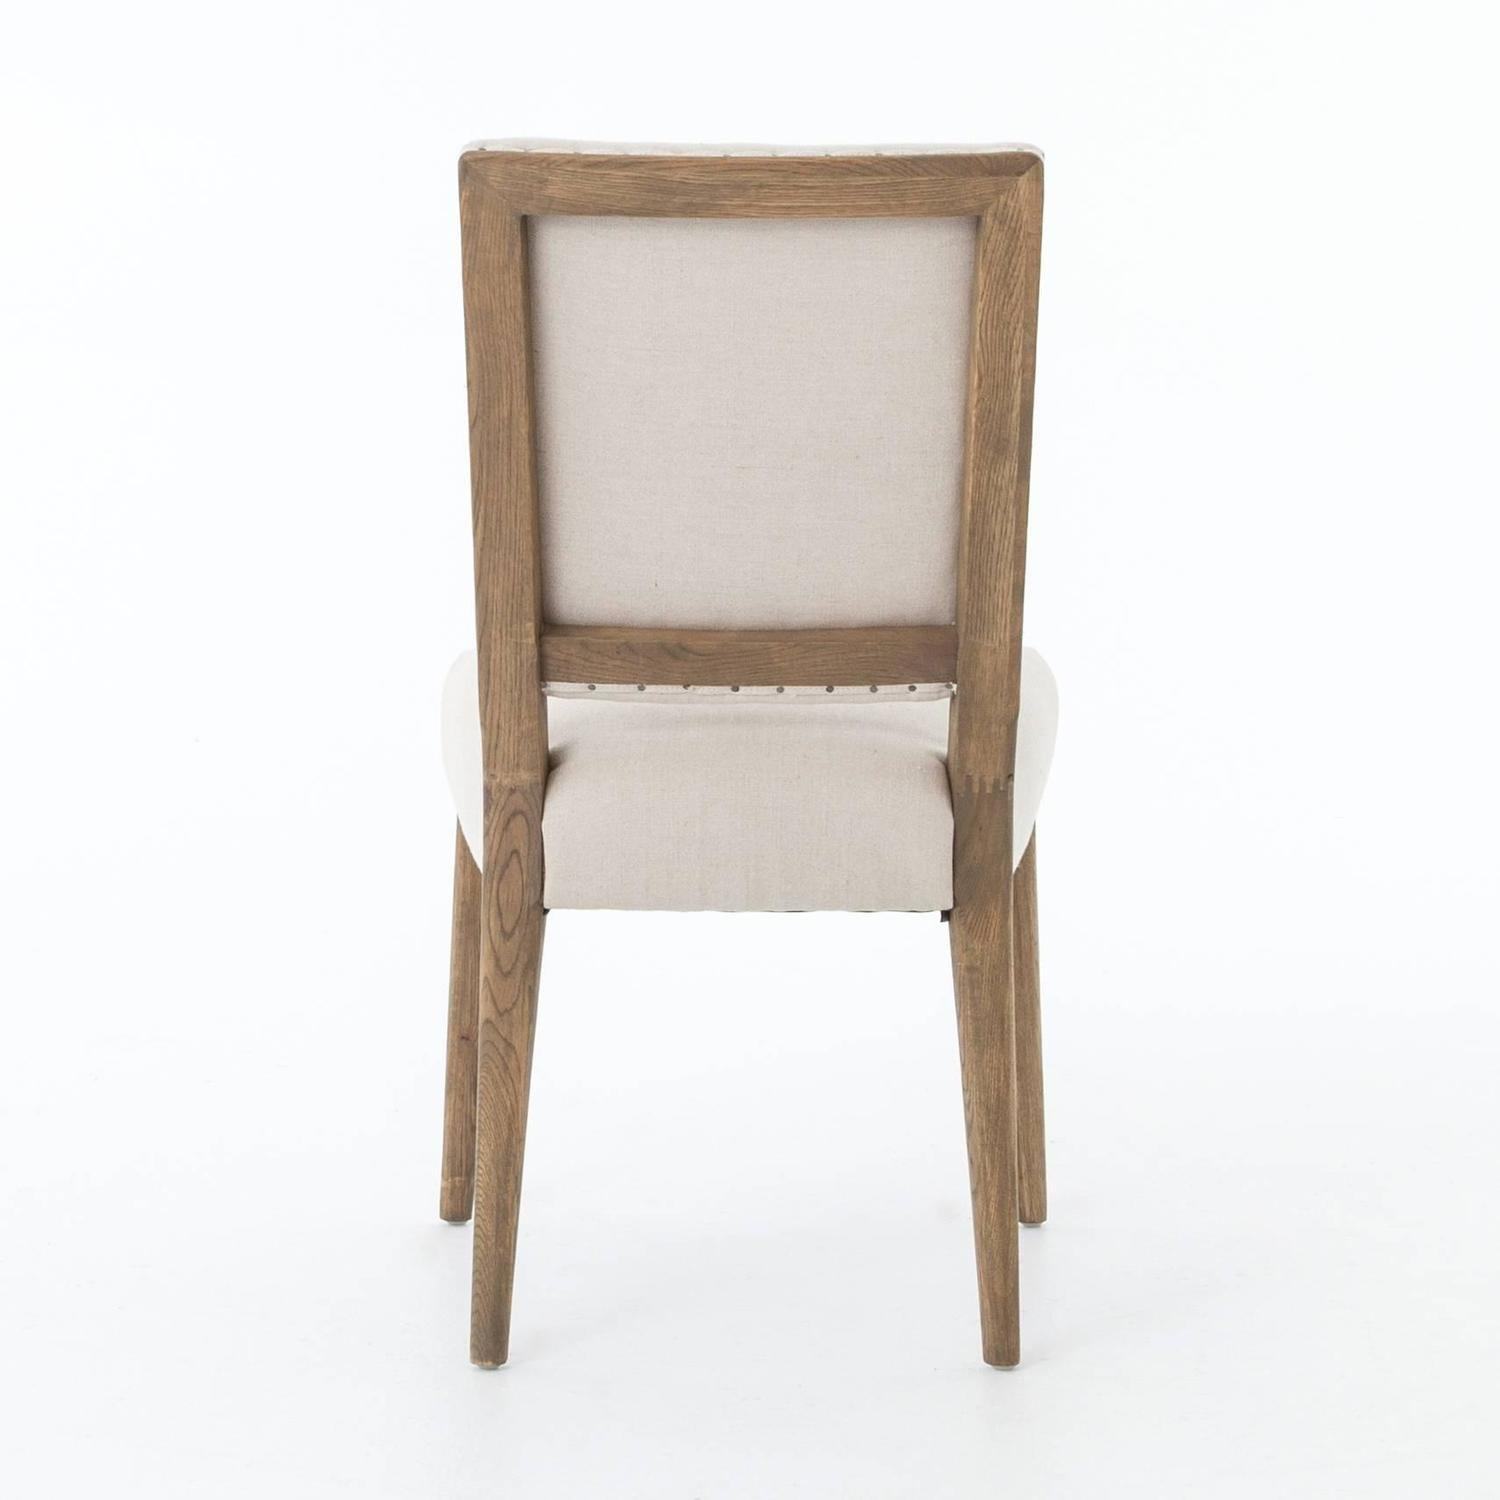 upholstered dining chair for sale at 1stdibs